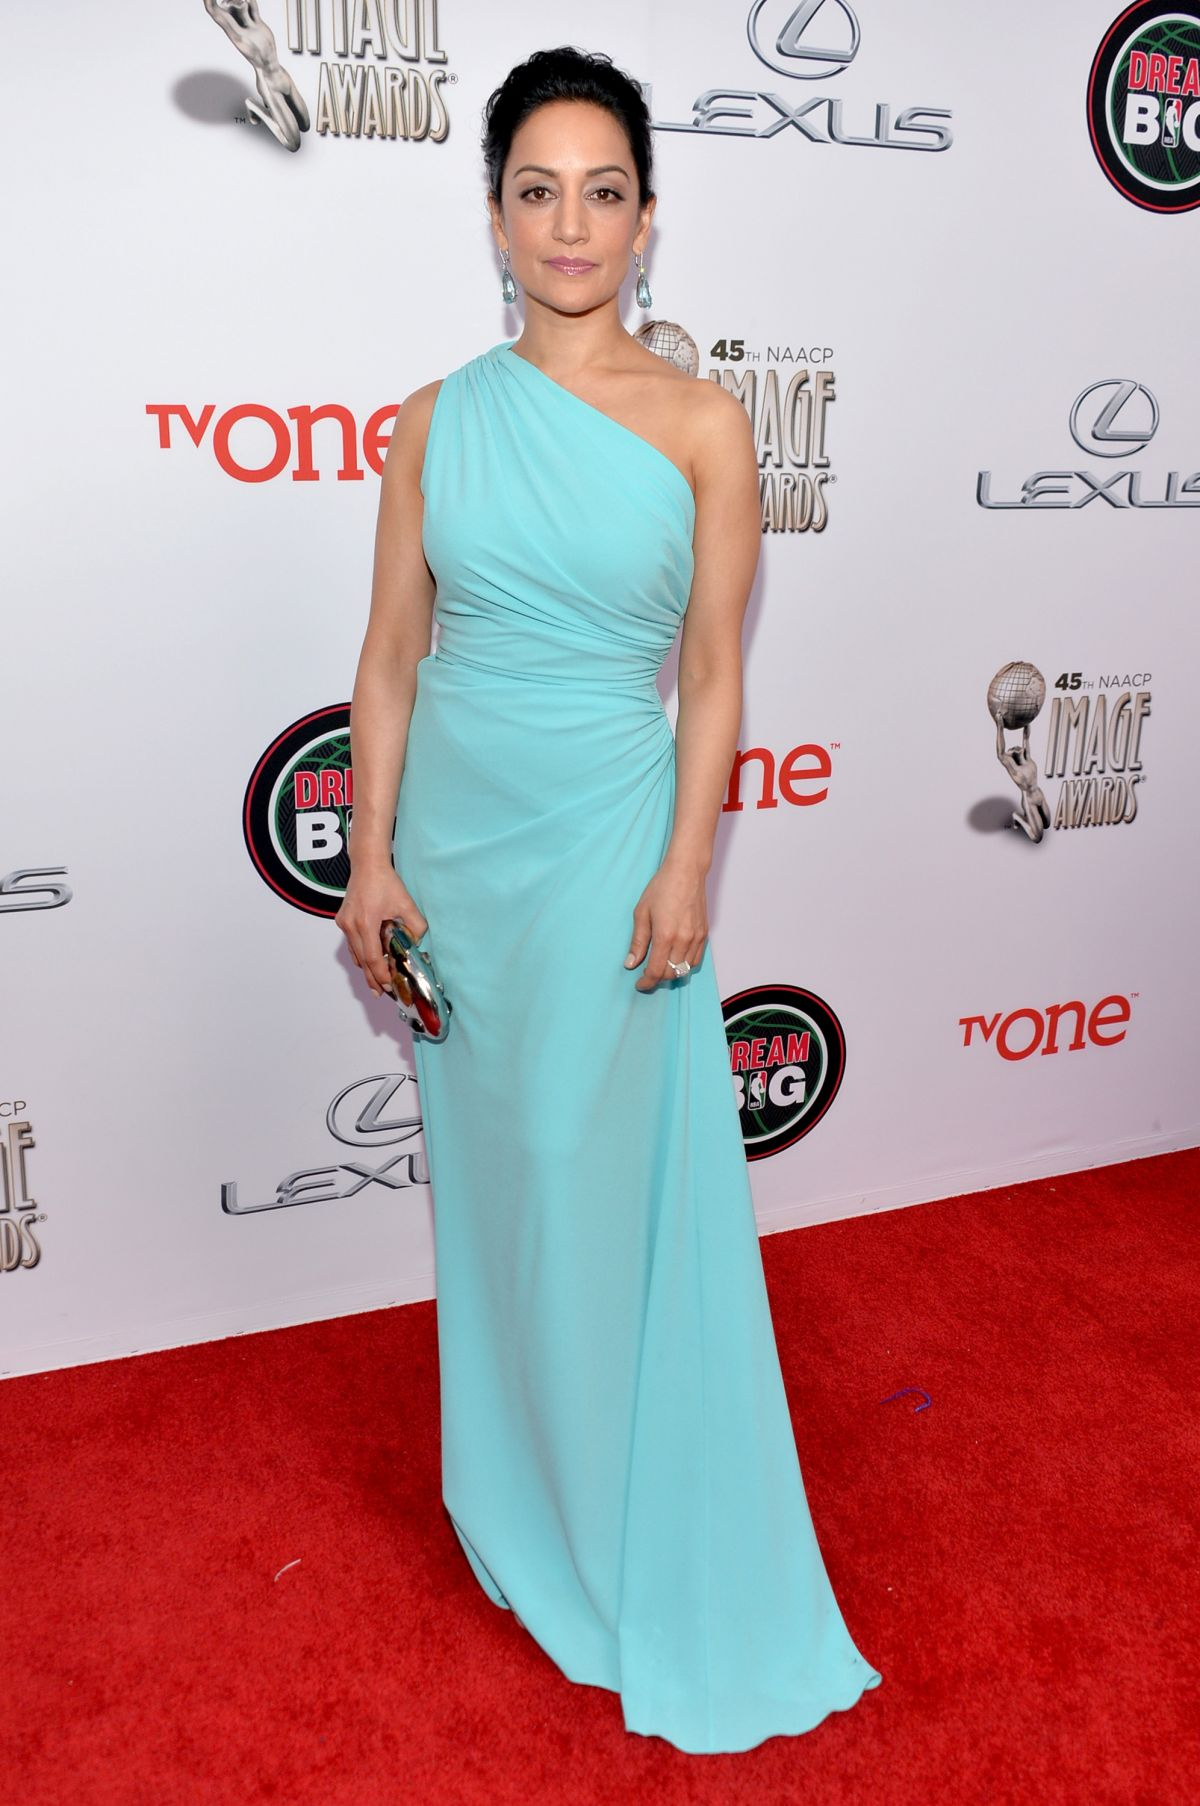 ARCHIE PANJABI at 45th NAACP Image Awards in Pasadena